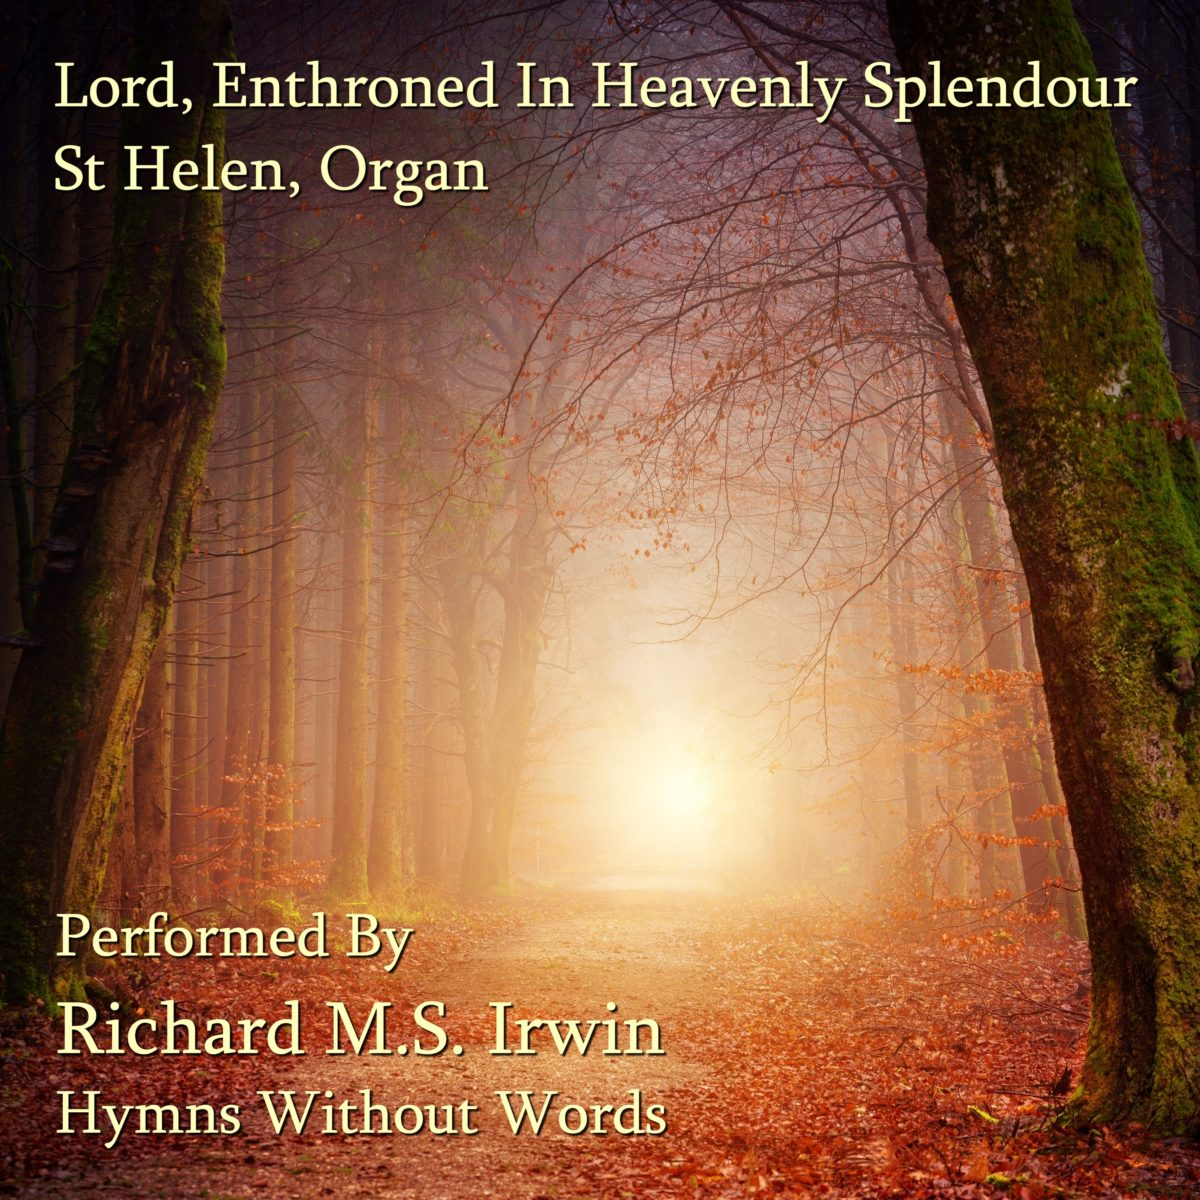 Lord Enthroned In Heavenly Splendour (Saint Helen, Organ, 5 Verses)